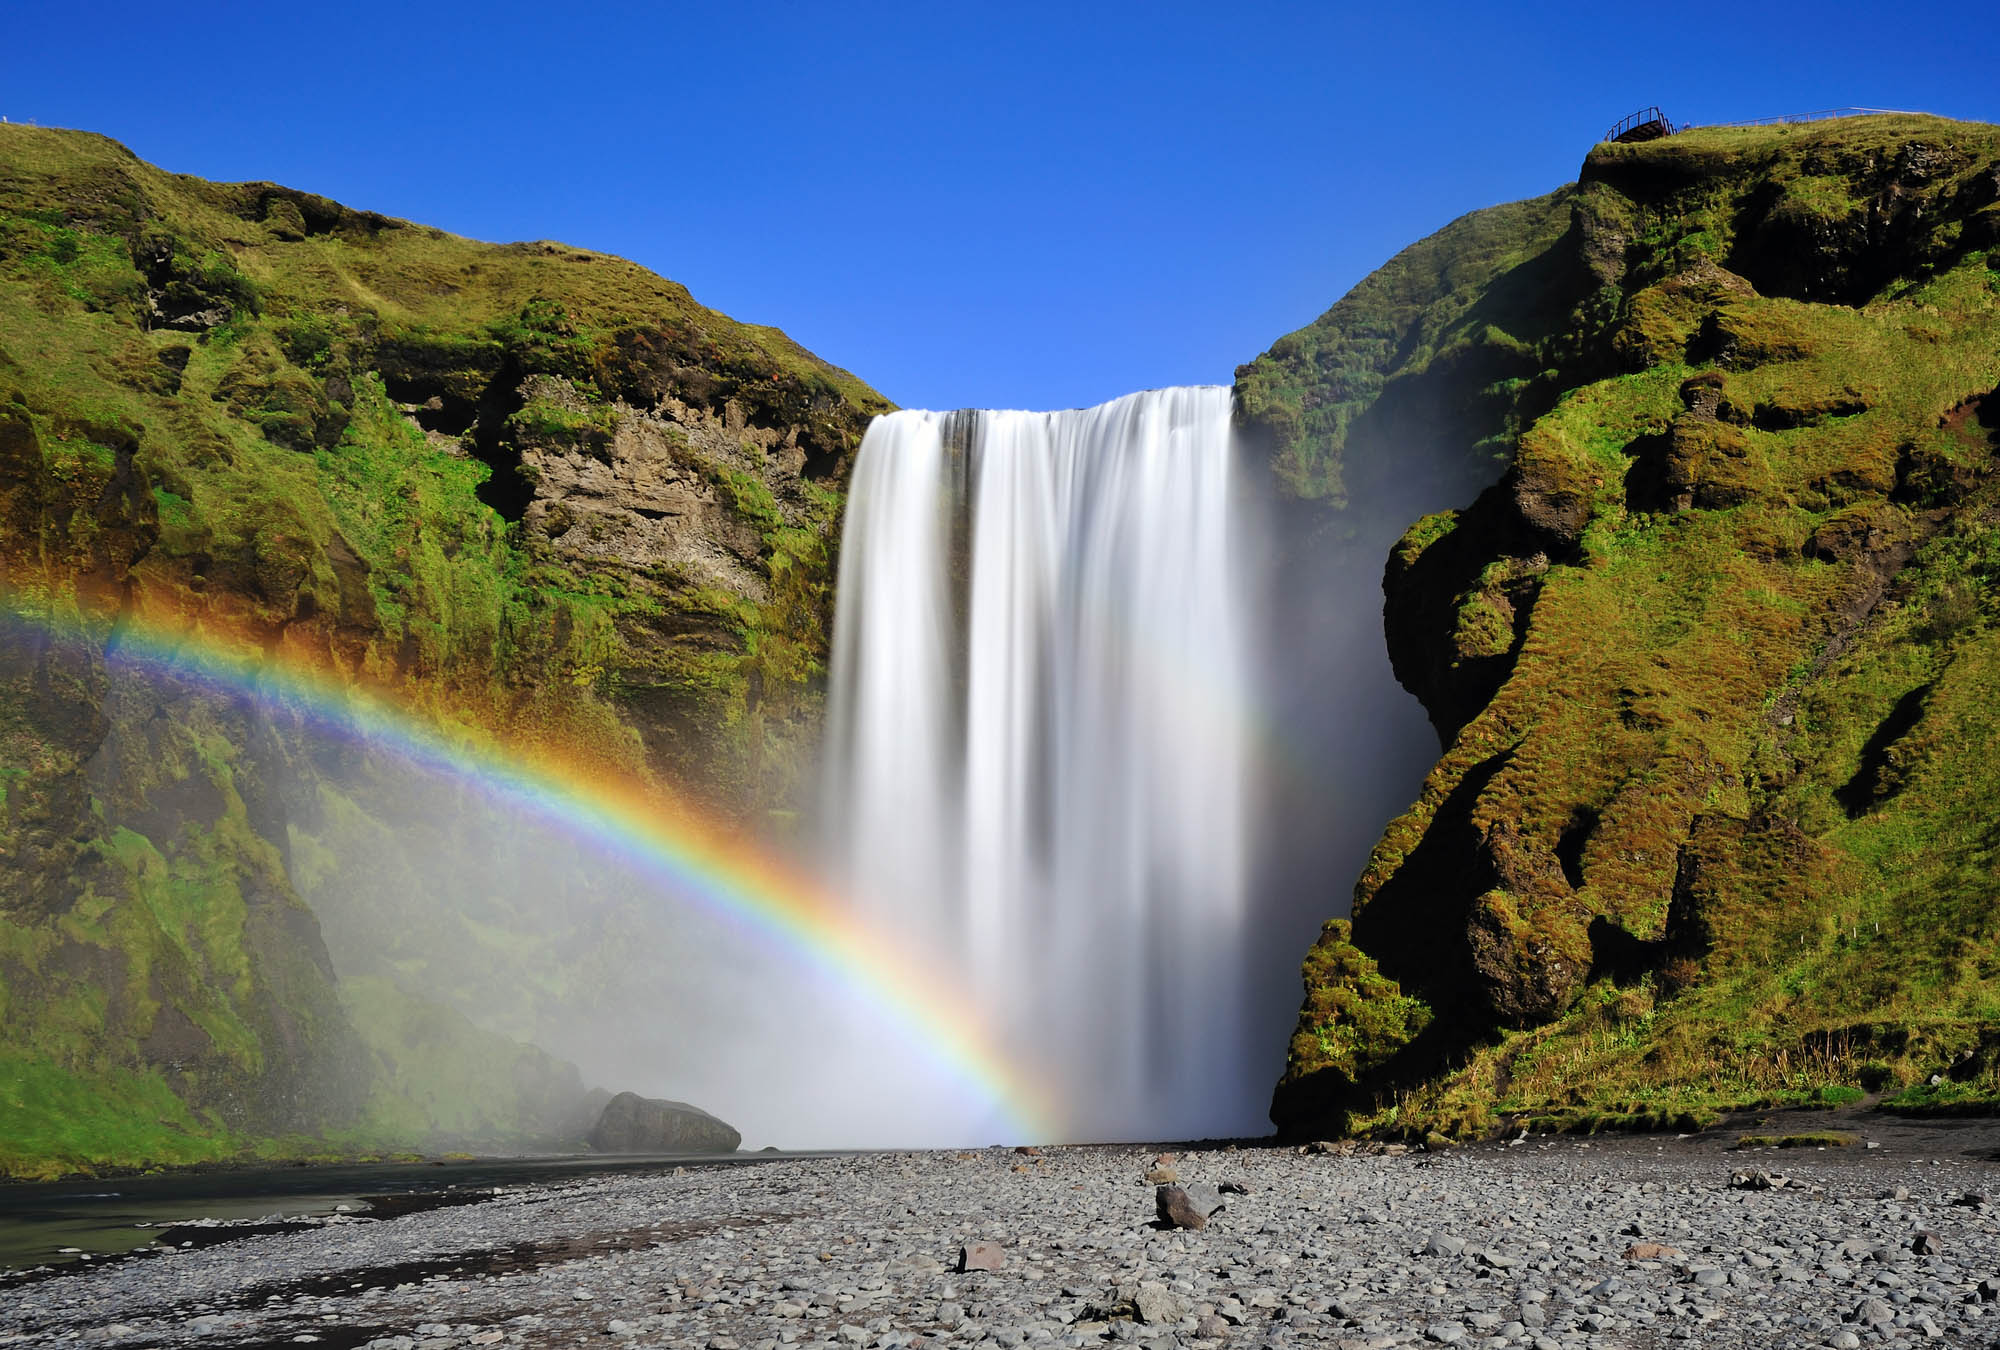 Long exposure of famous Skogafoss waterfall in Iceland